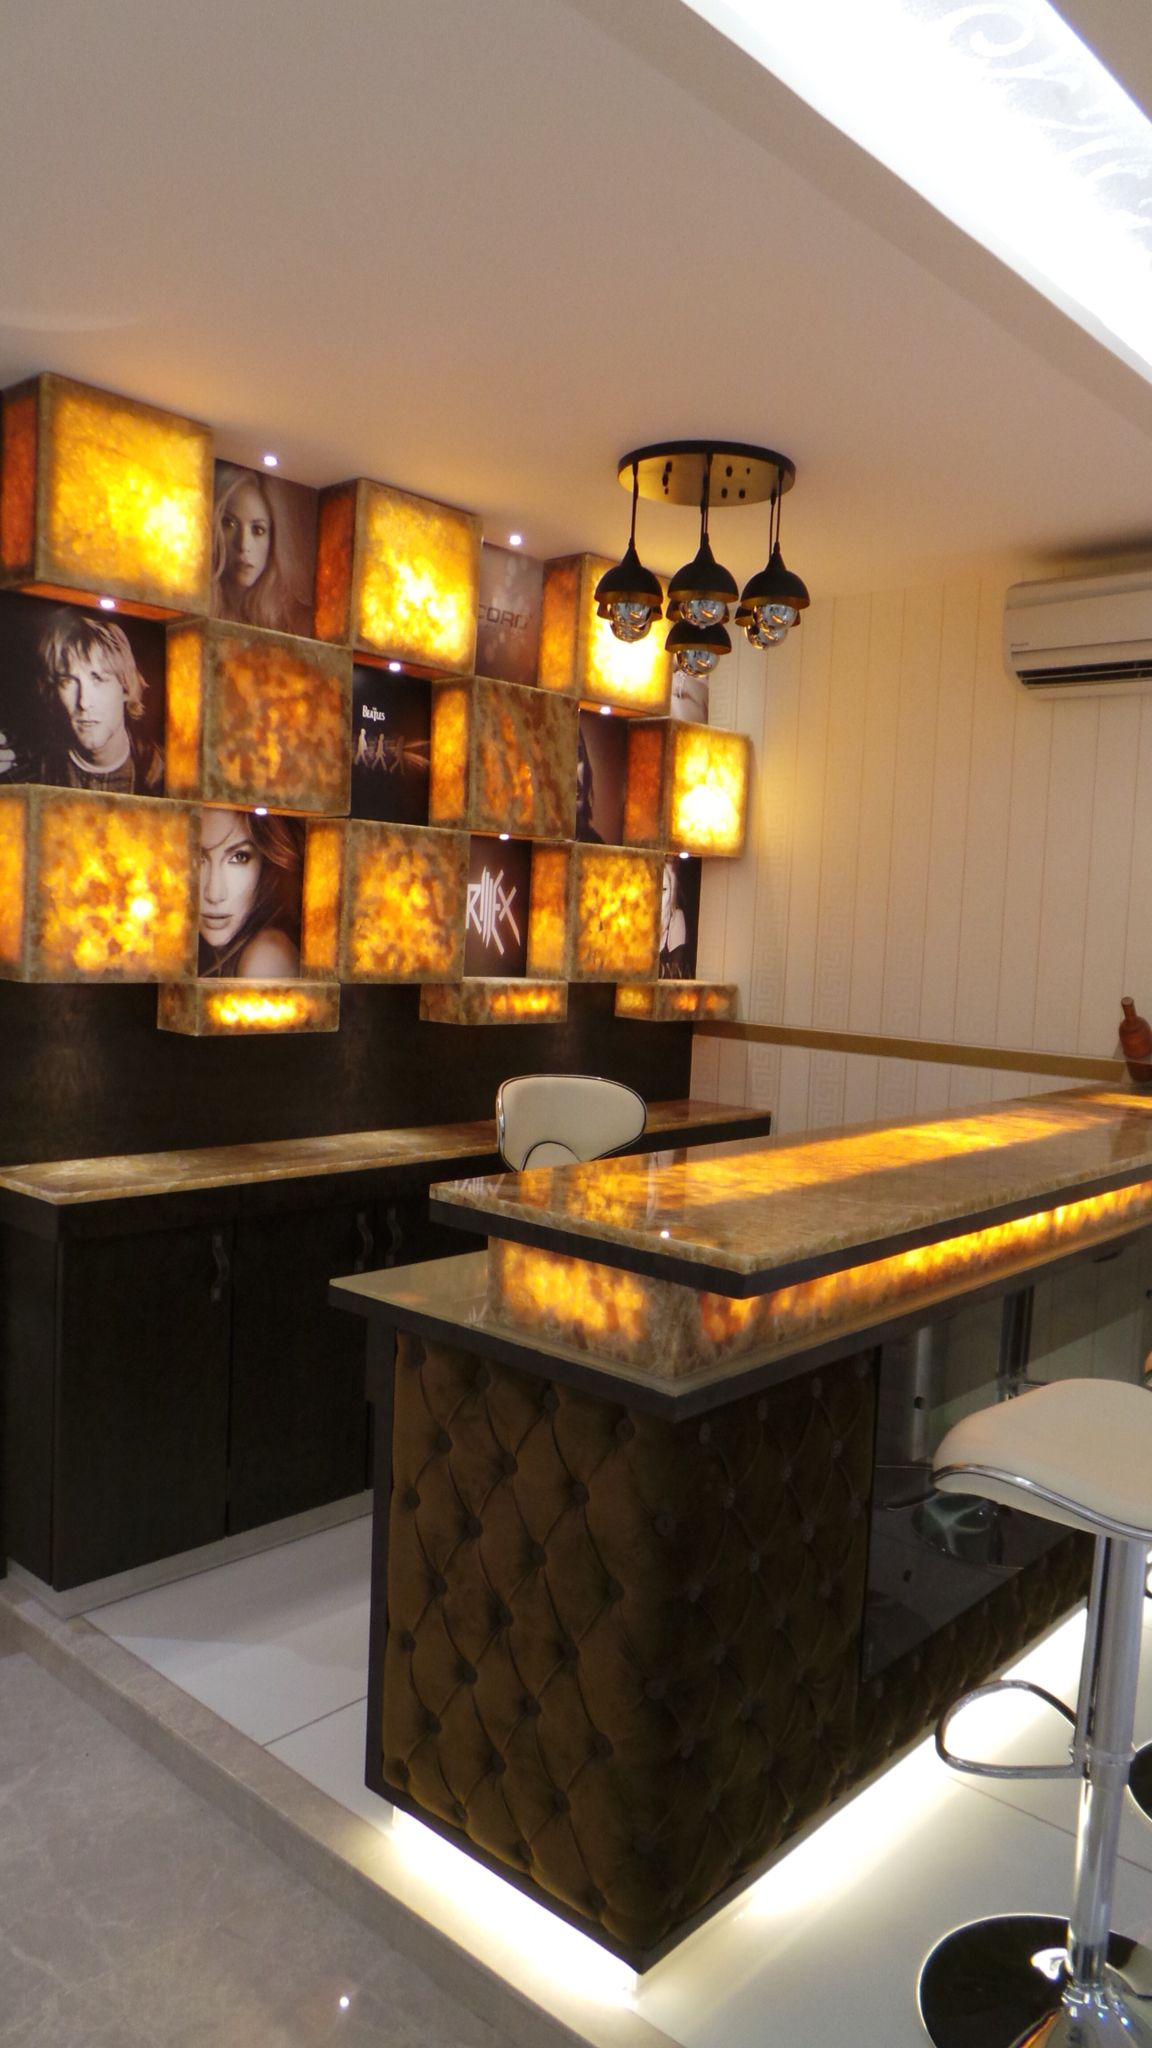 onyx marble bar counter designed by sonivipuldesigns. Black Bedroom Furniture Sets. Home Design Ideas